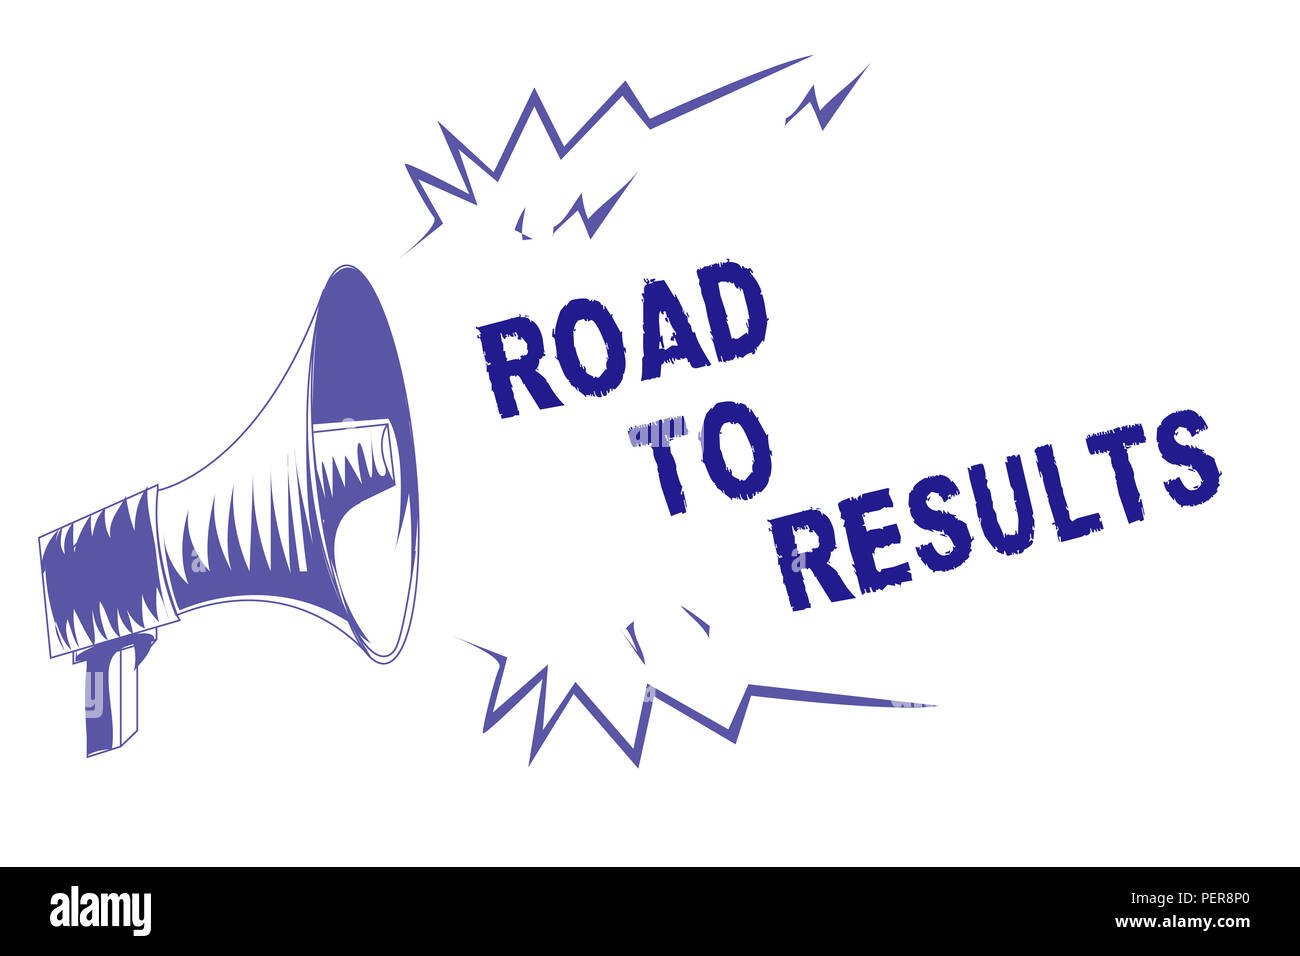 Word writing text Road To Results. Business concept for Business direction Path Result Achievements Goals Progress Purple megaphone loudspeaker import - Stock Image